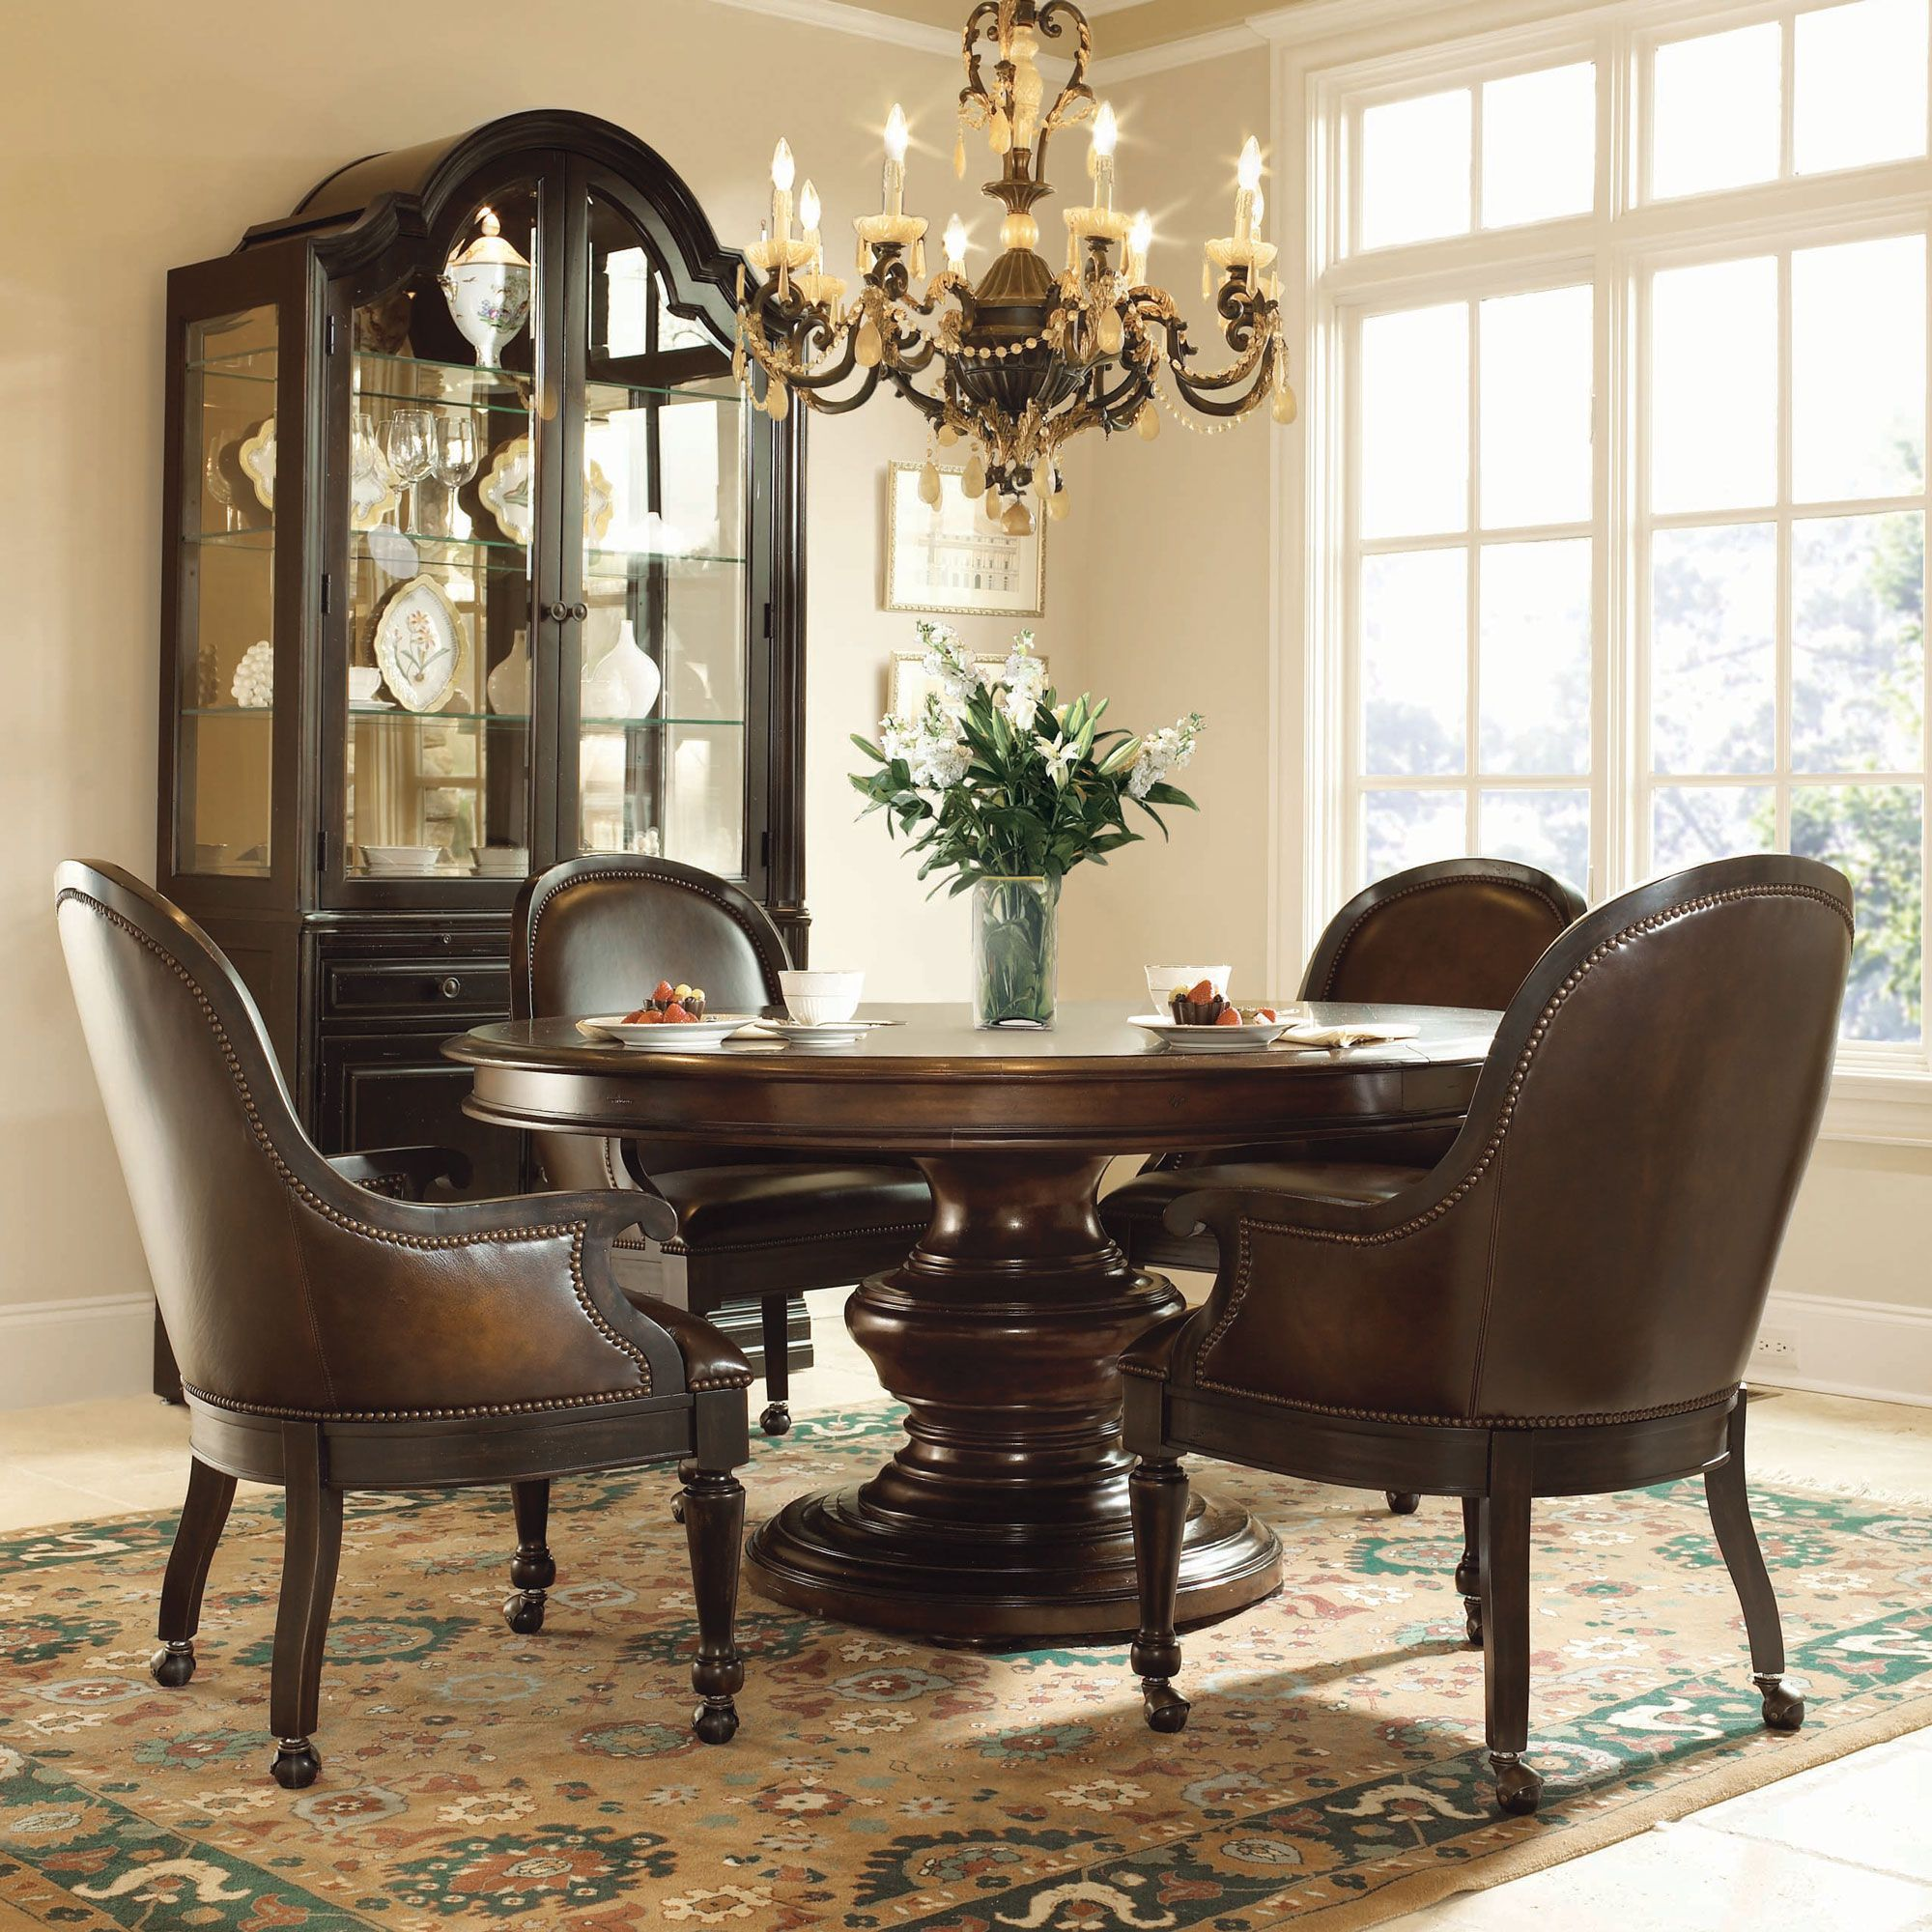 bernhardt normandie manor 5pc round dining room set with large casters game chairs in bark. Black Bedroom Furniture Sets. Home Design Ideas